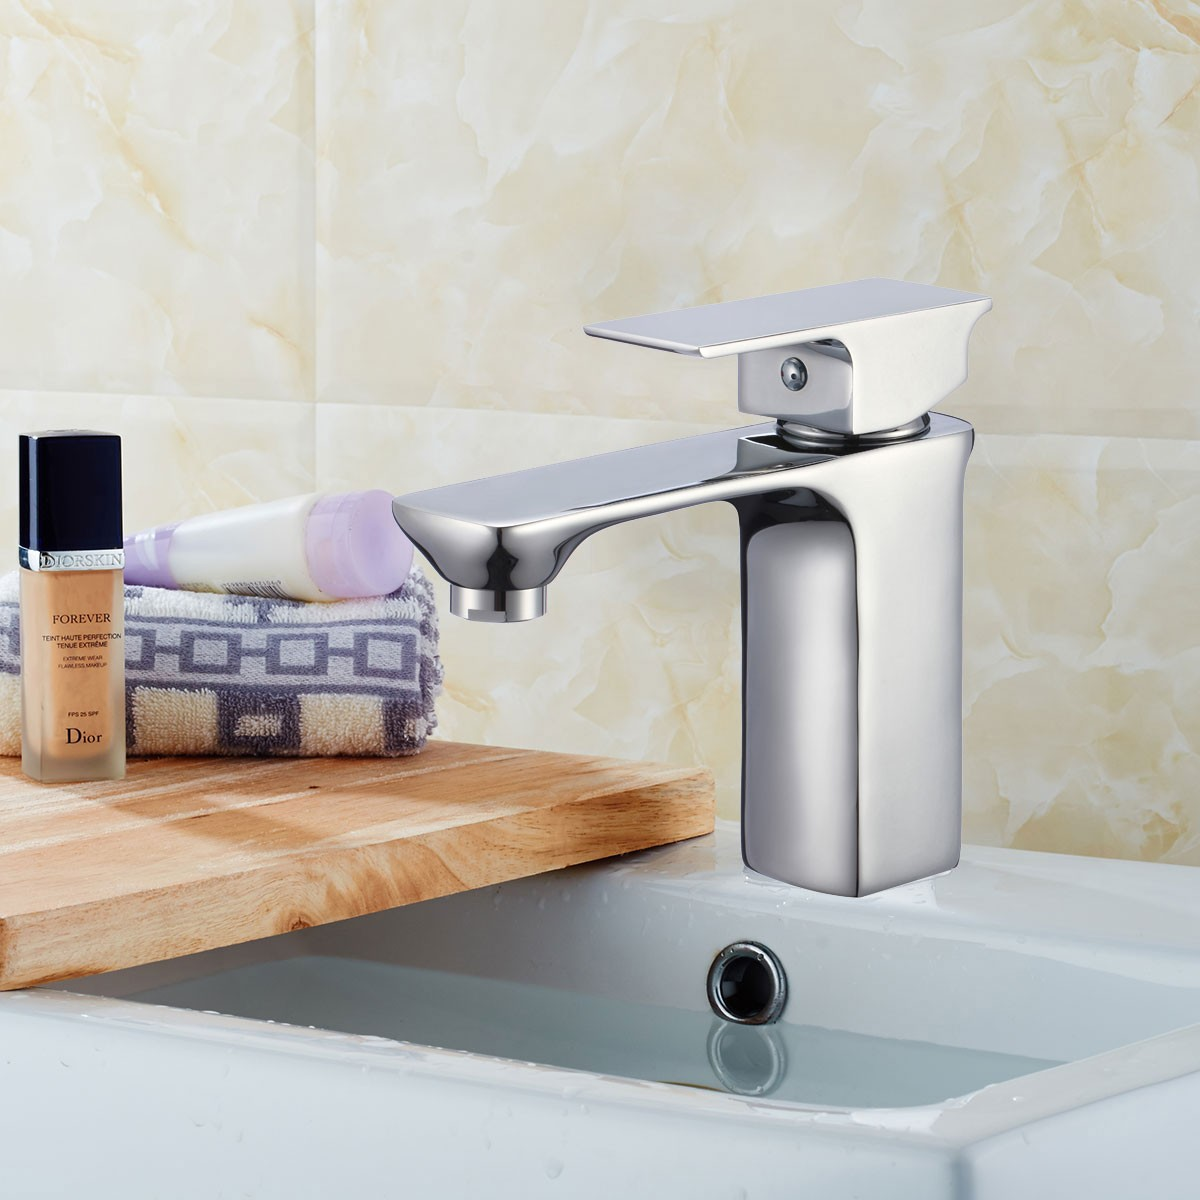 Basin&Sink Faucet - Single Hole Single Lever - Brass with Chrome Finish (81H36-CHR-007)